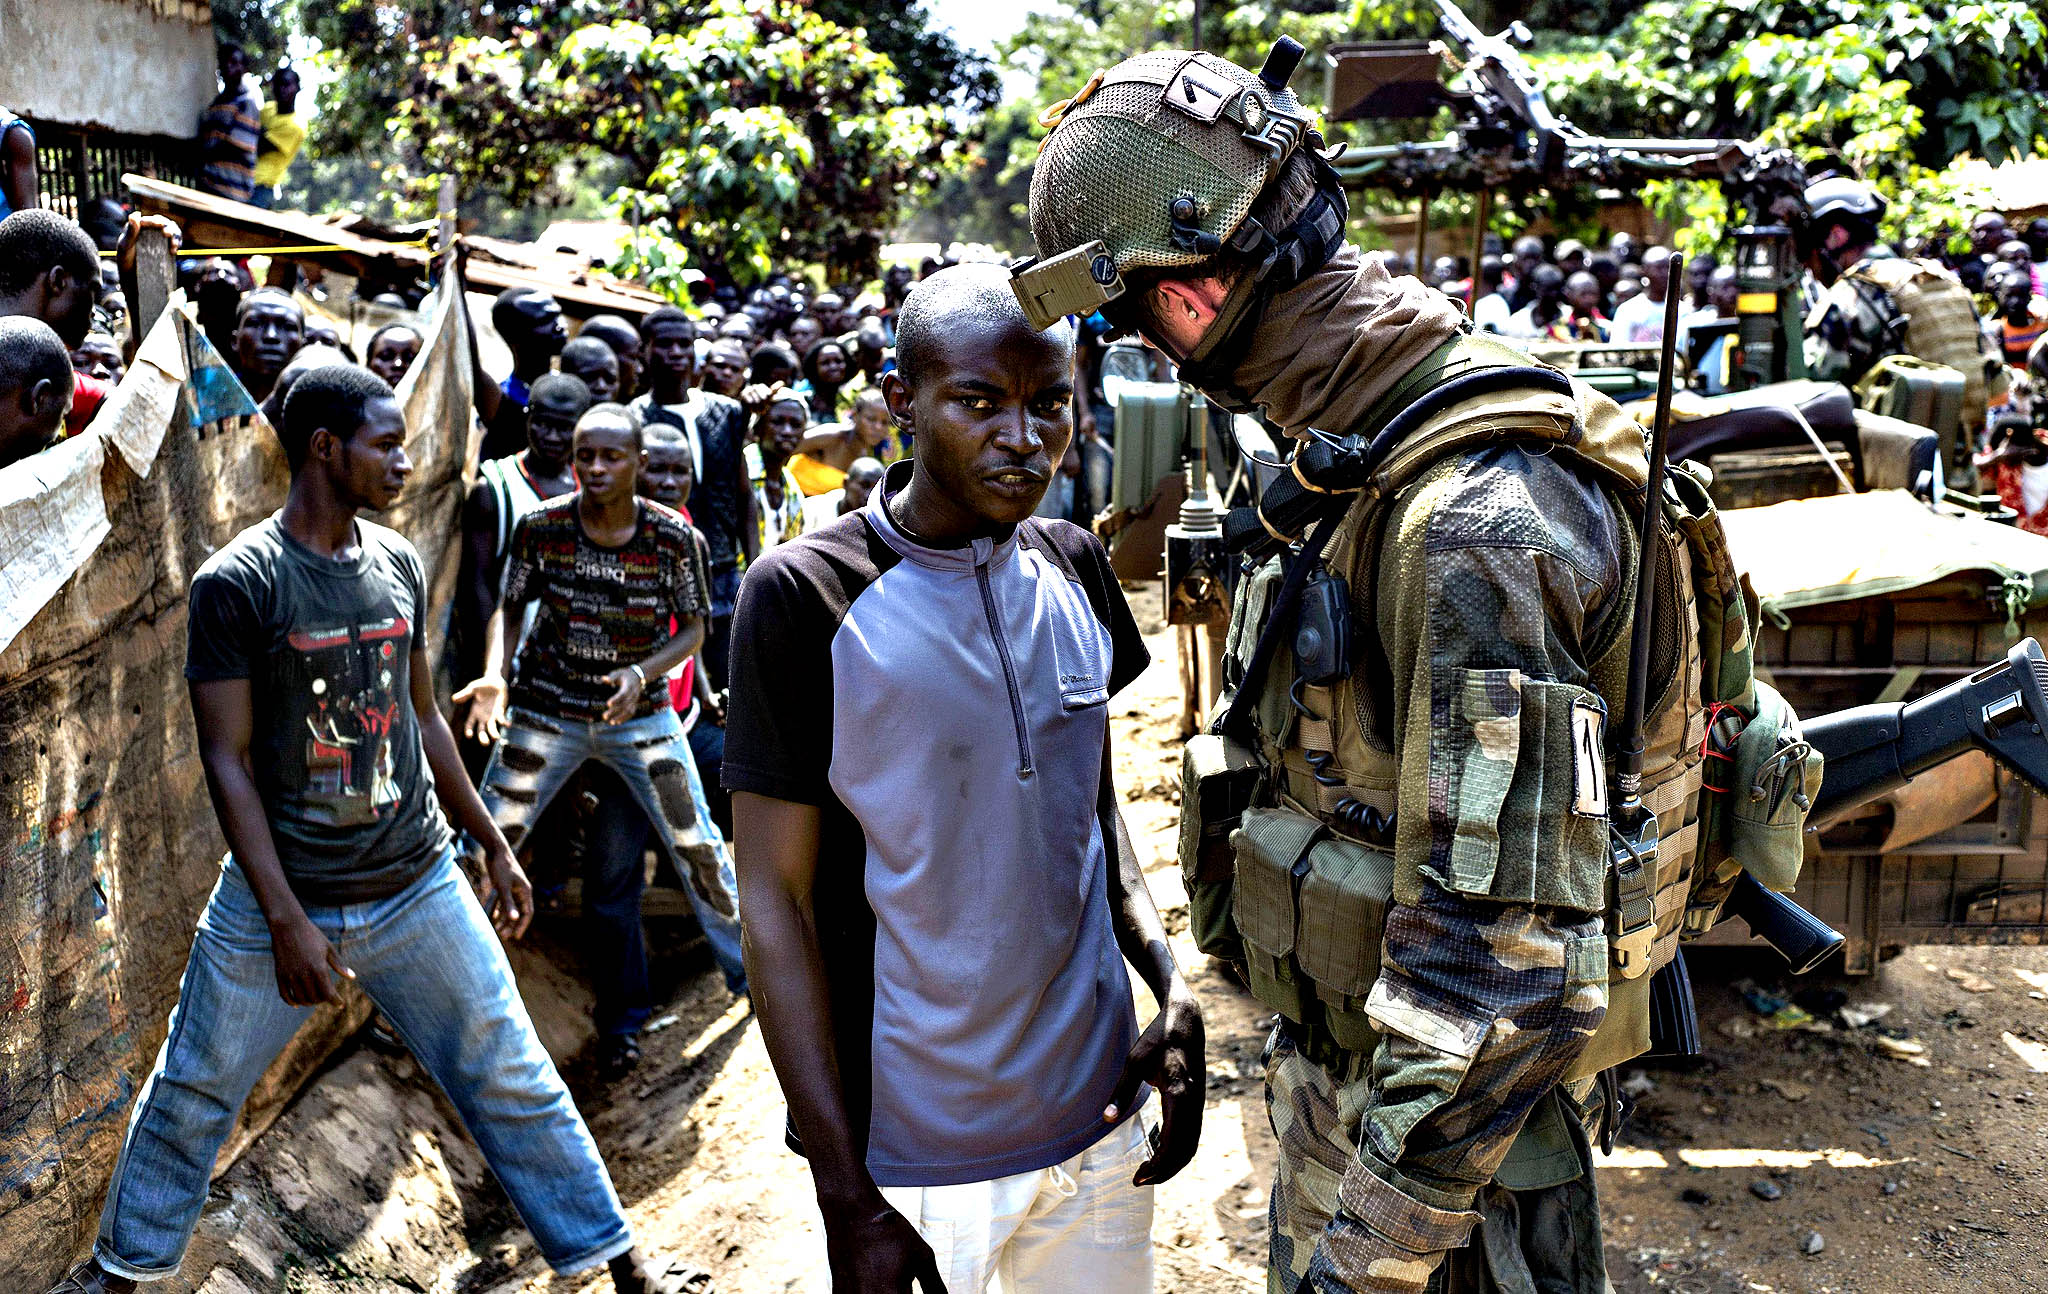 A man gives informations about ex-seleka rebels to a French soldier in Combattant neighborhood near Bangui's airport, on December 9, 2013. French troops on Monday began disarming fighters in the Central African Republic after a swell in sectarian violence that has claimed hundreds of lives and terrified inhabitants.